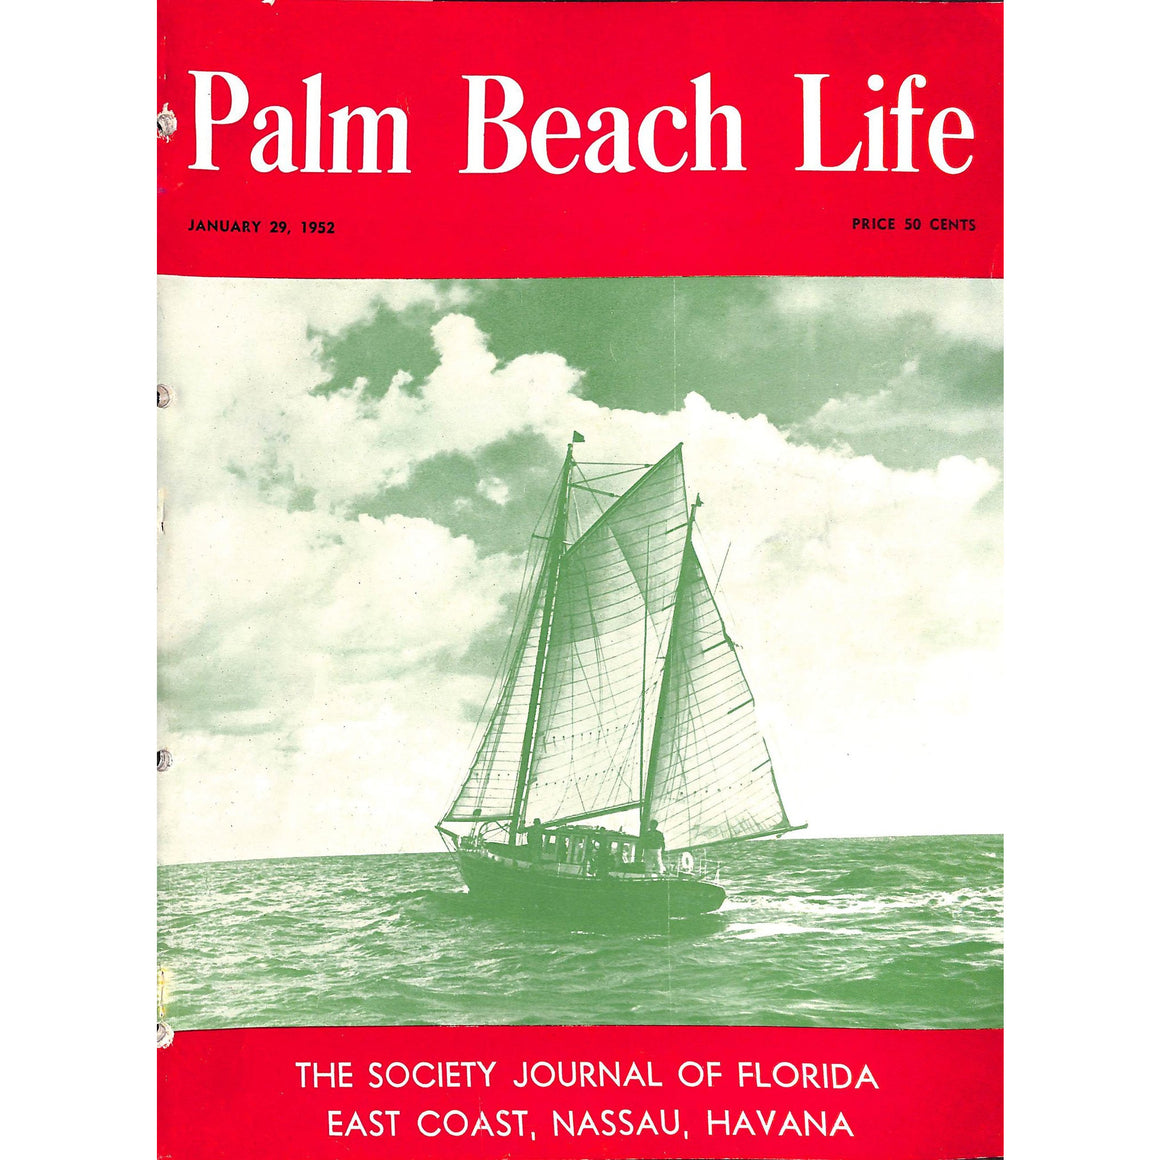 Palm Beach Life Magazine January 29, 1952